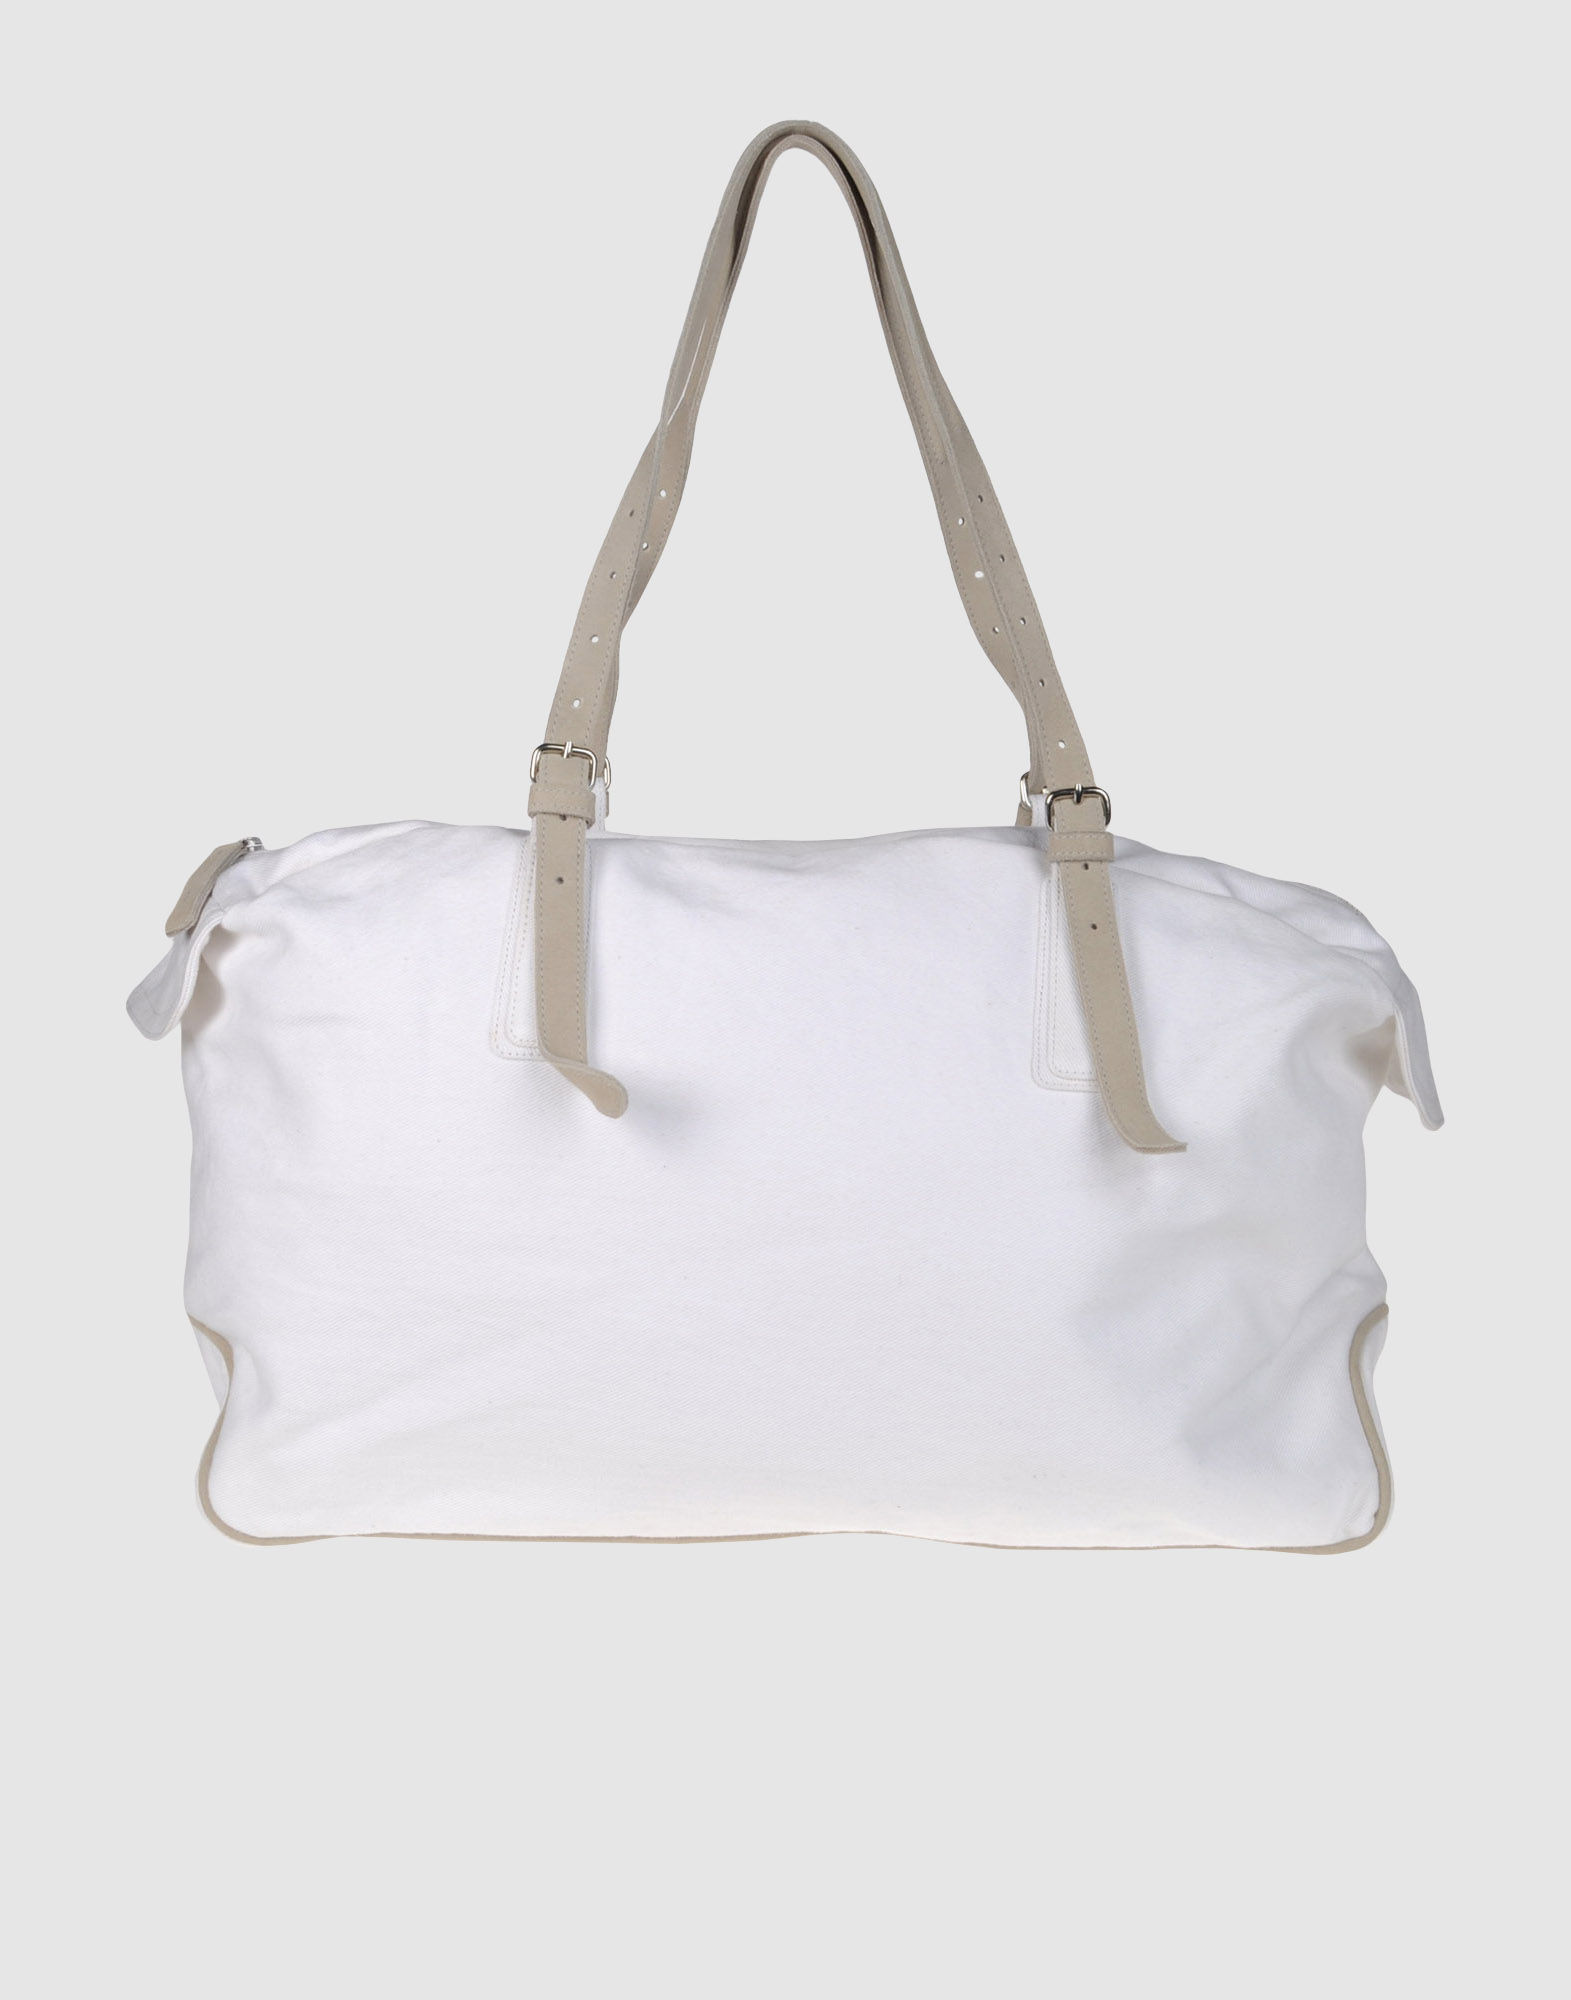 6b9a440a23d1 Lyst - Dries Van Noten Large Fabric Bags in White